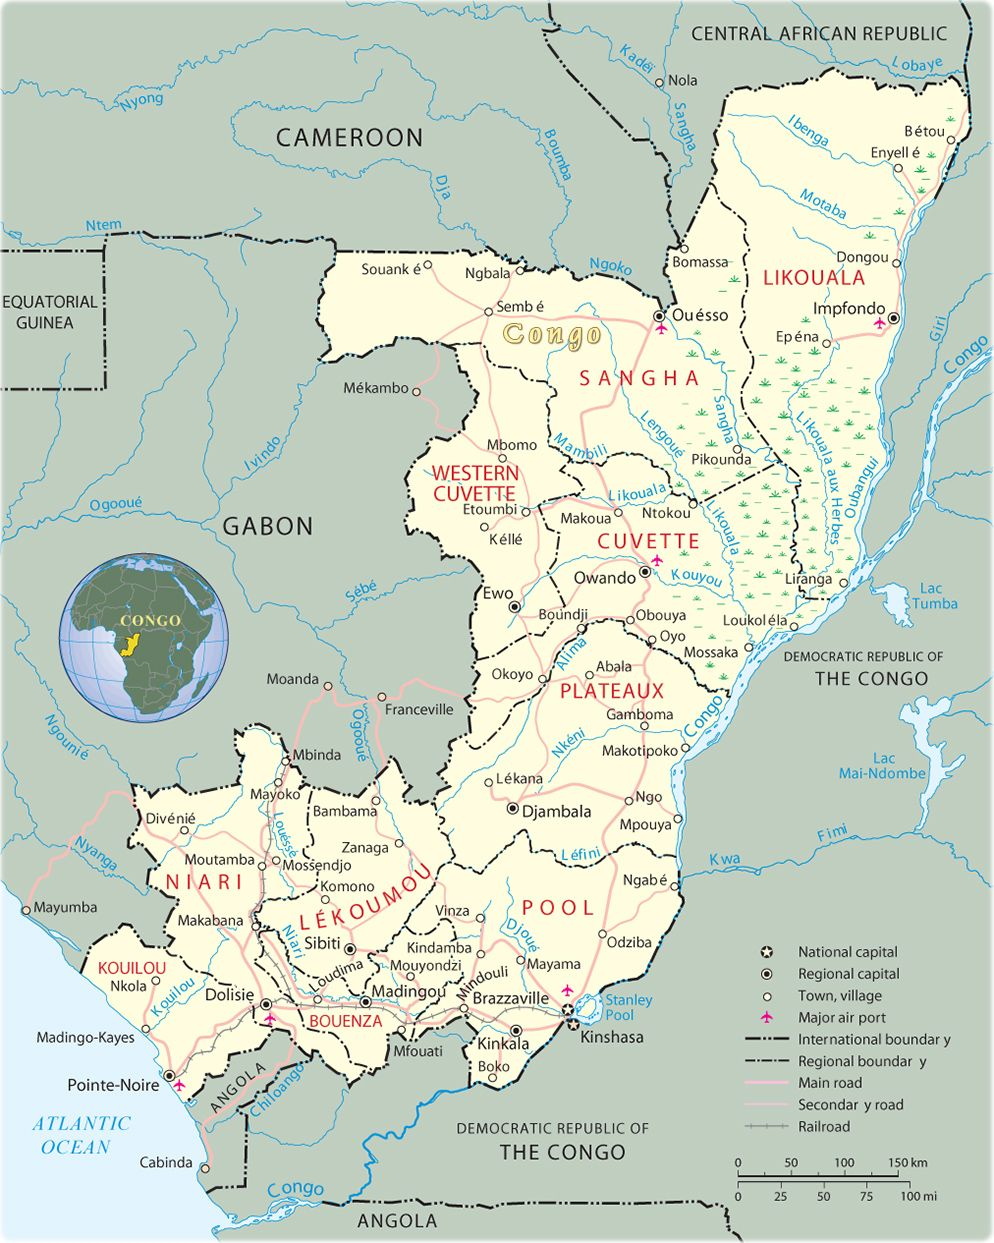 Congo On Africa Map.Pin By The Domingo Badia Trail On Embryo Maps Pinterest Congo